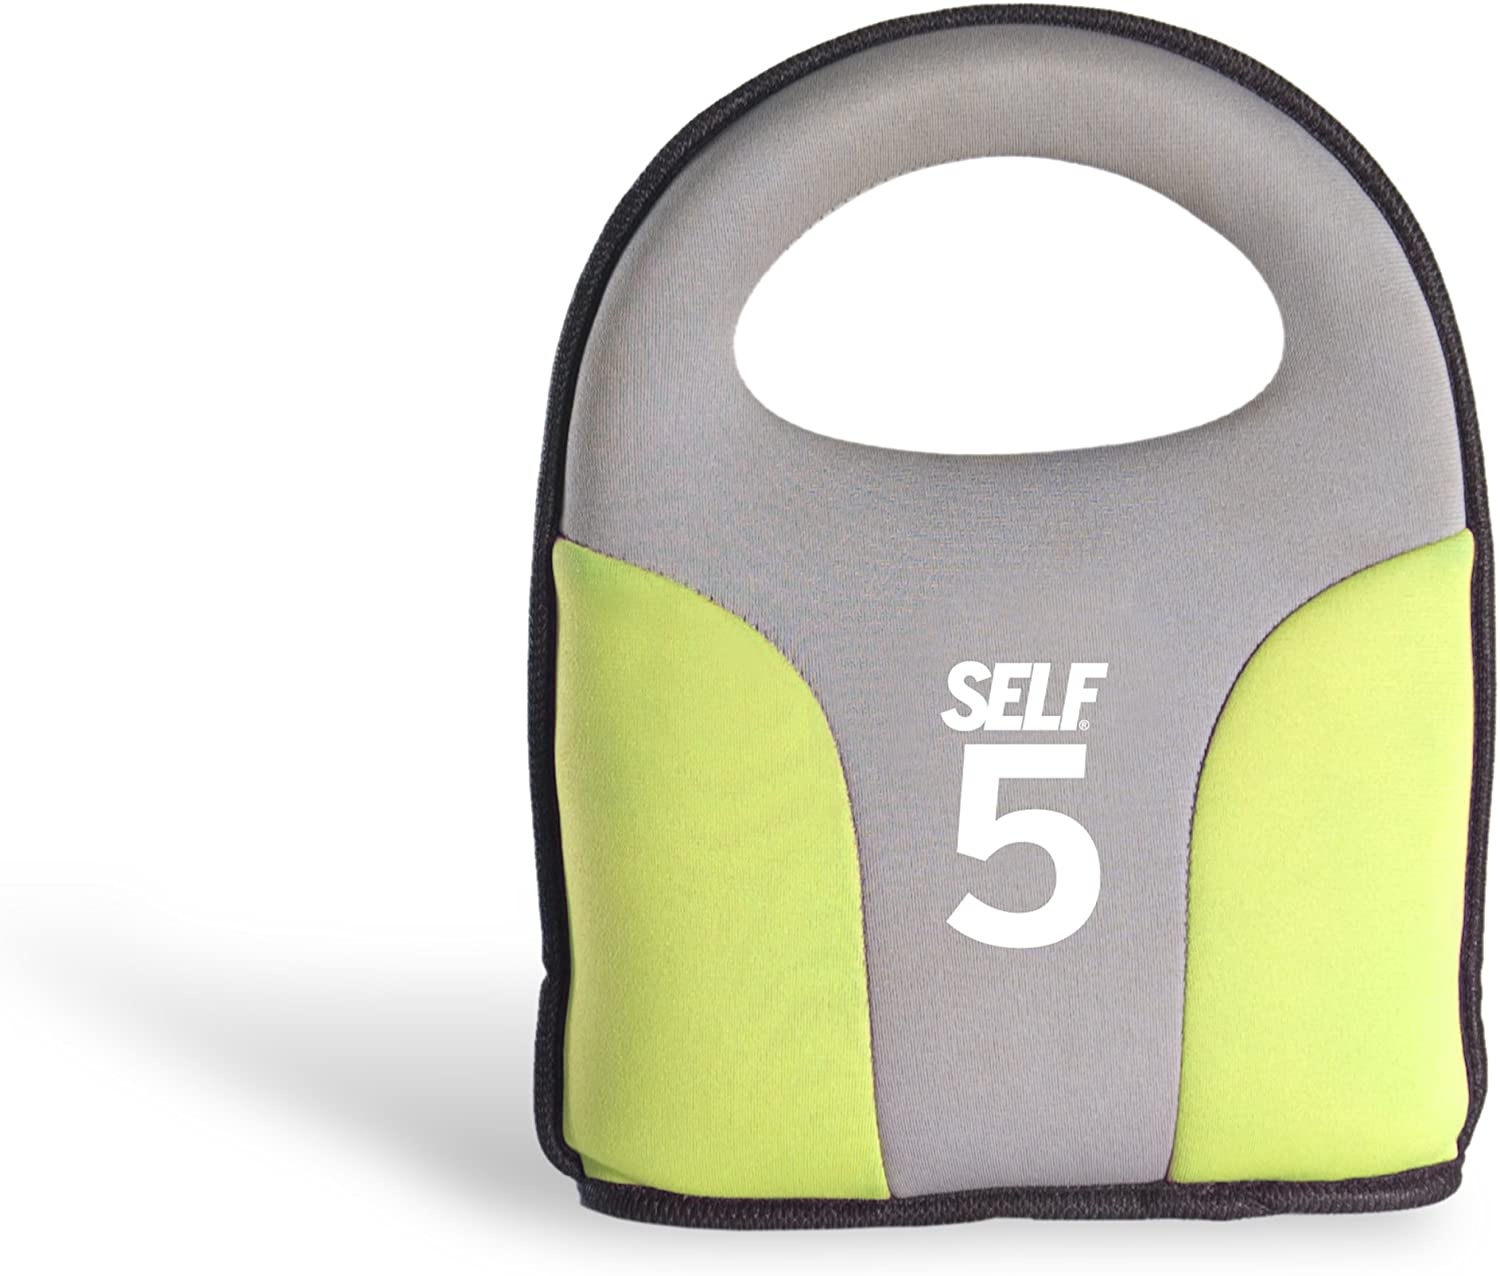 self Special Campaign Soft Luxury goods Kettlebell